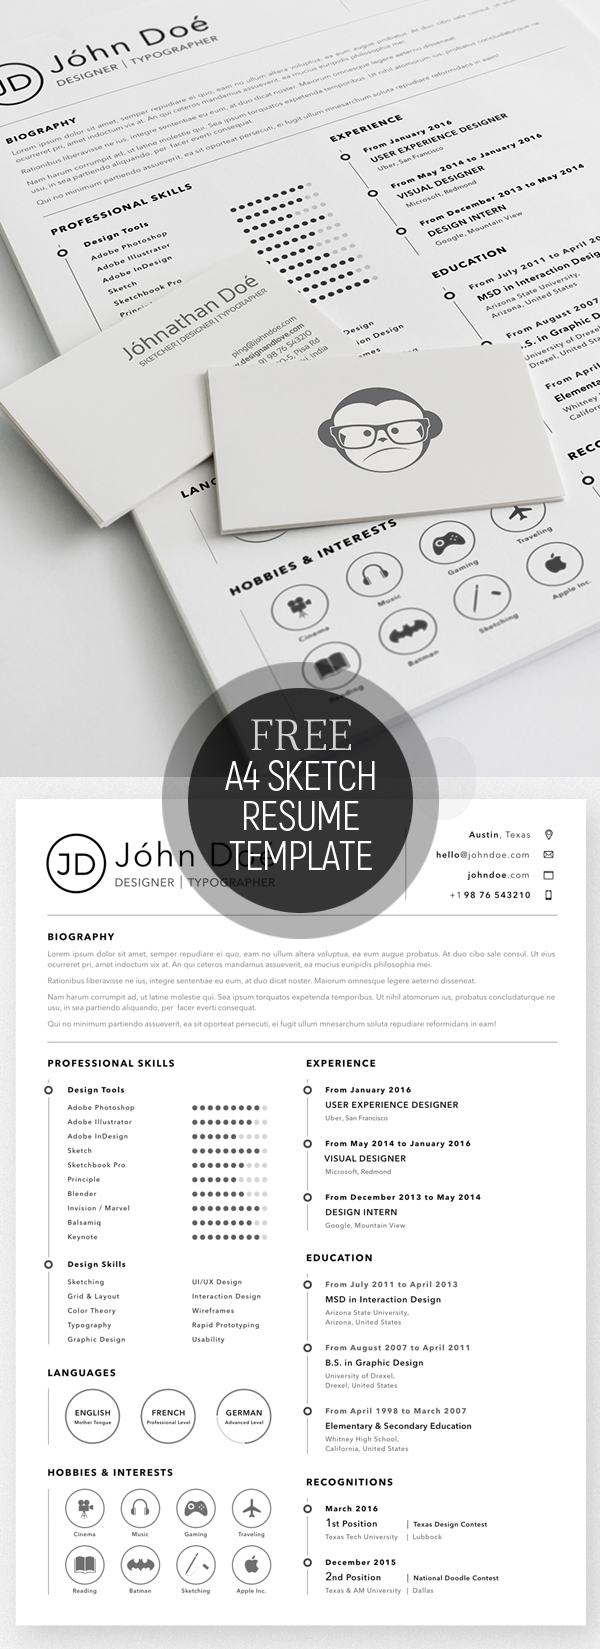 Free A4 Resume Sketch Template